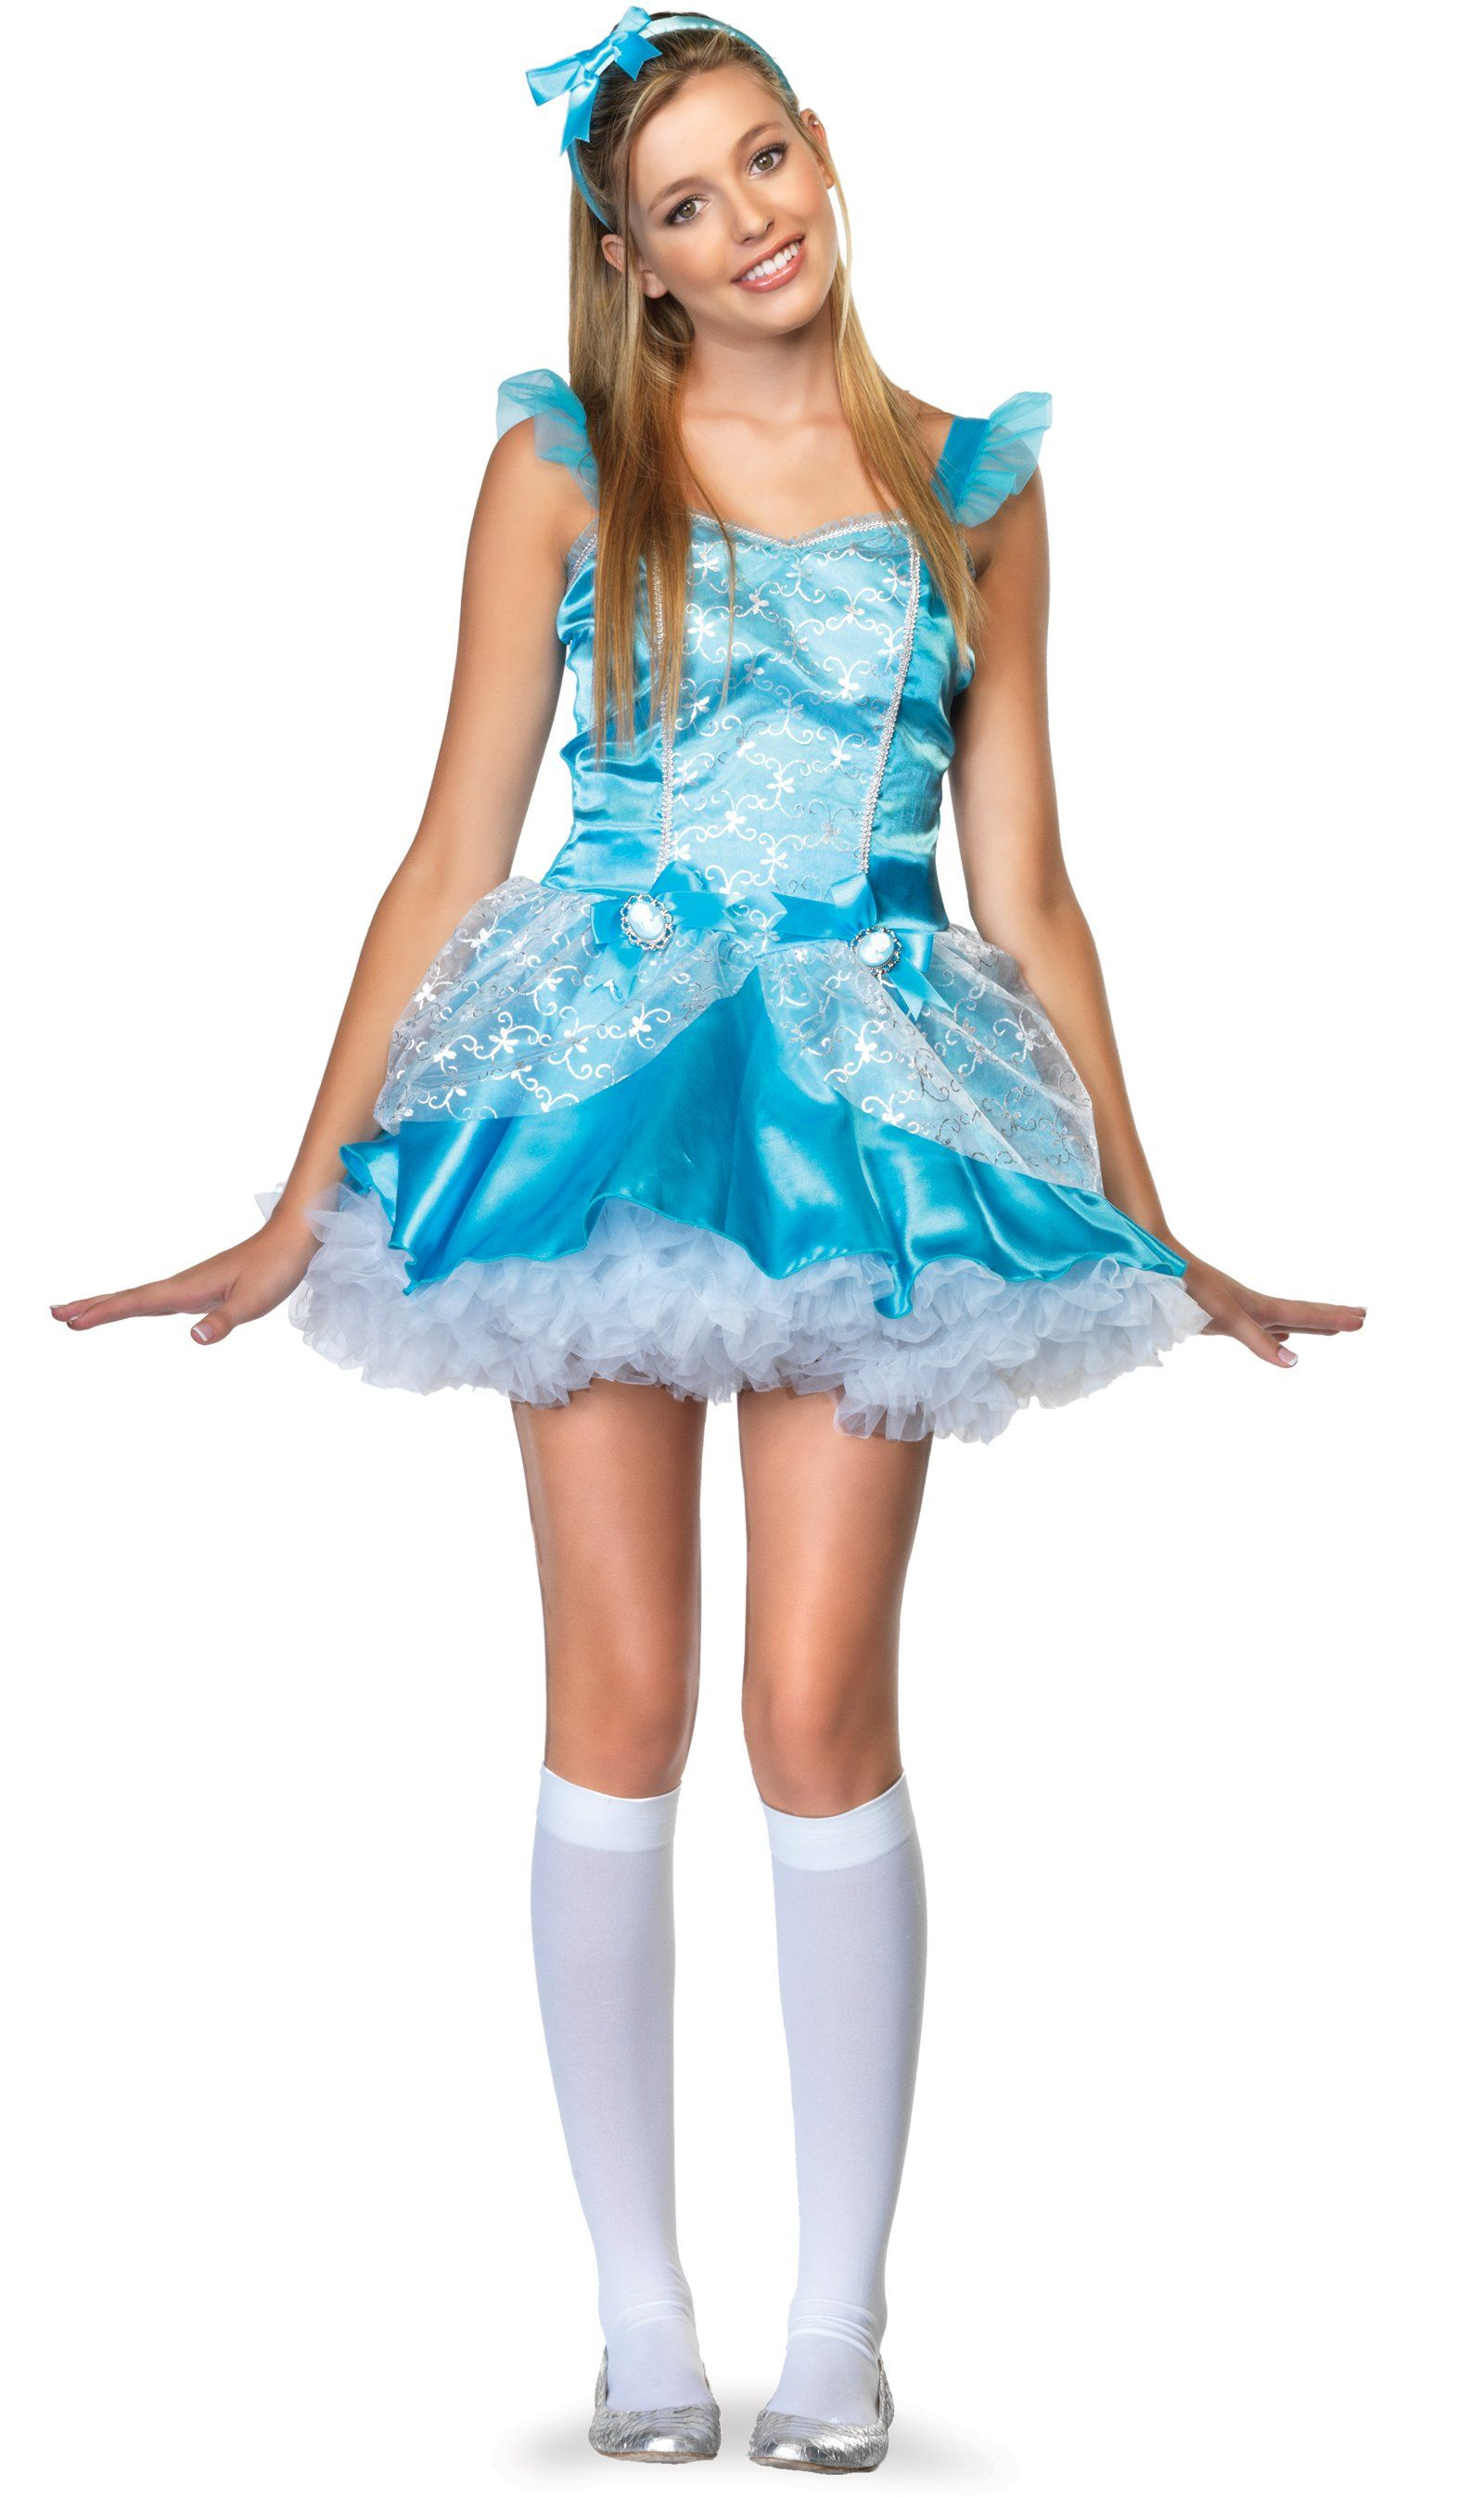 fairy tale princess teen costume $24.99 | costumes | pinterest